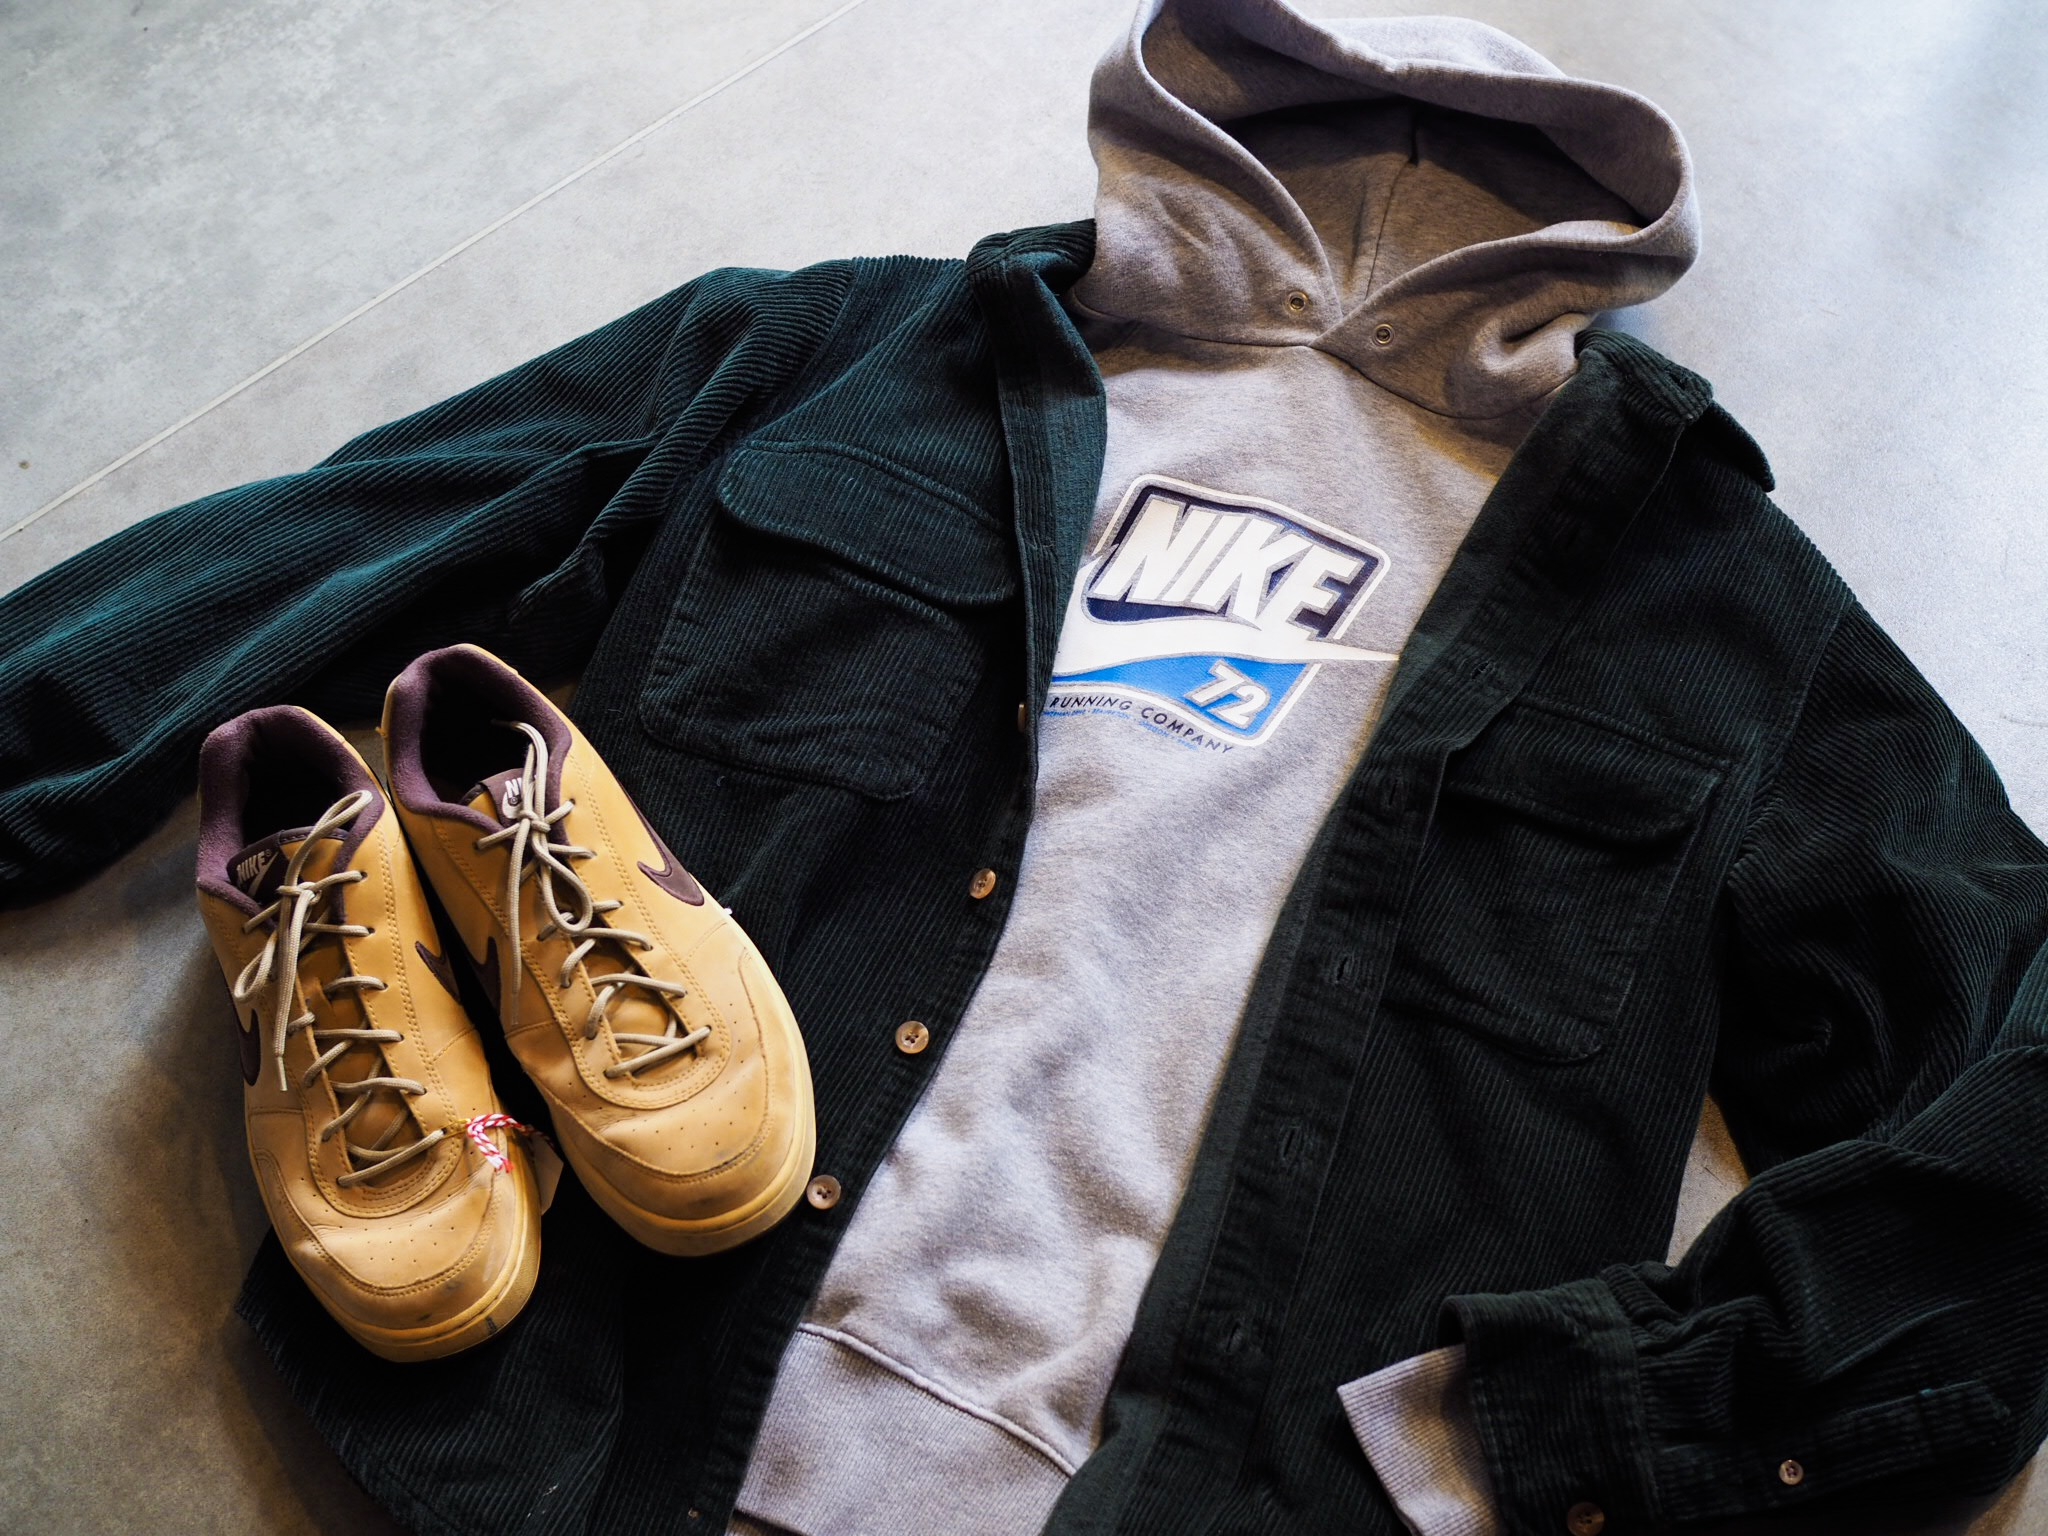 A Nike hoodie is a sportswear/streetwear staple. Not feeling the uber sports look? layer your hoodie with an ultra 90s, ultra cool, thick cord shirt and some Nike skating trainers: the perfect vintage outfit.